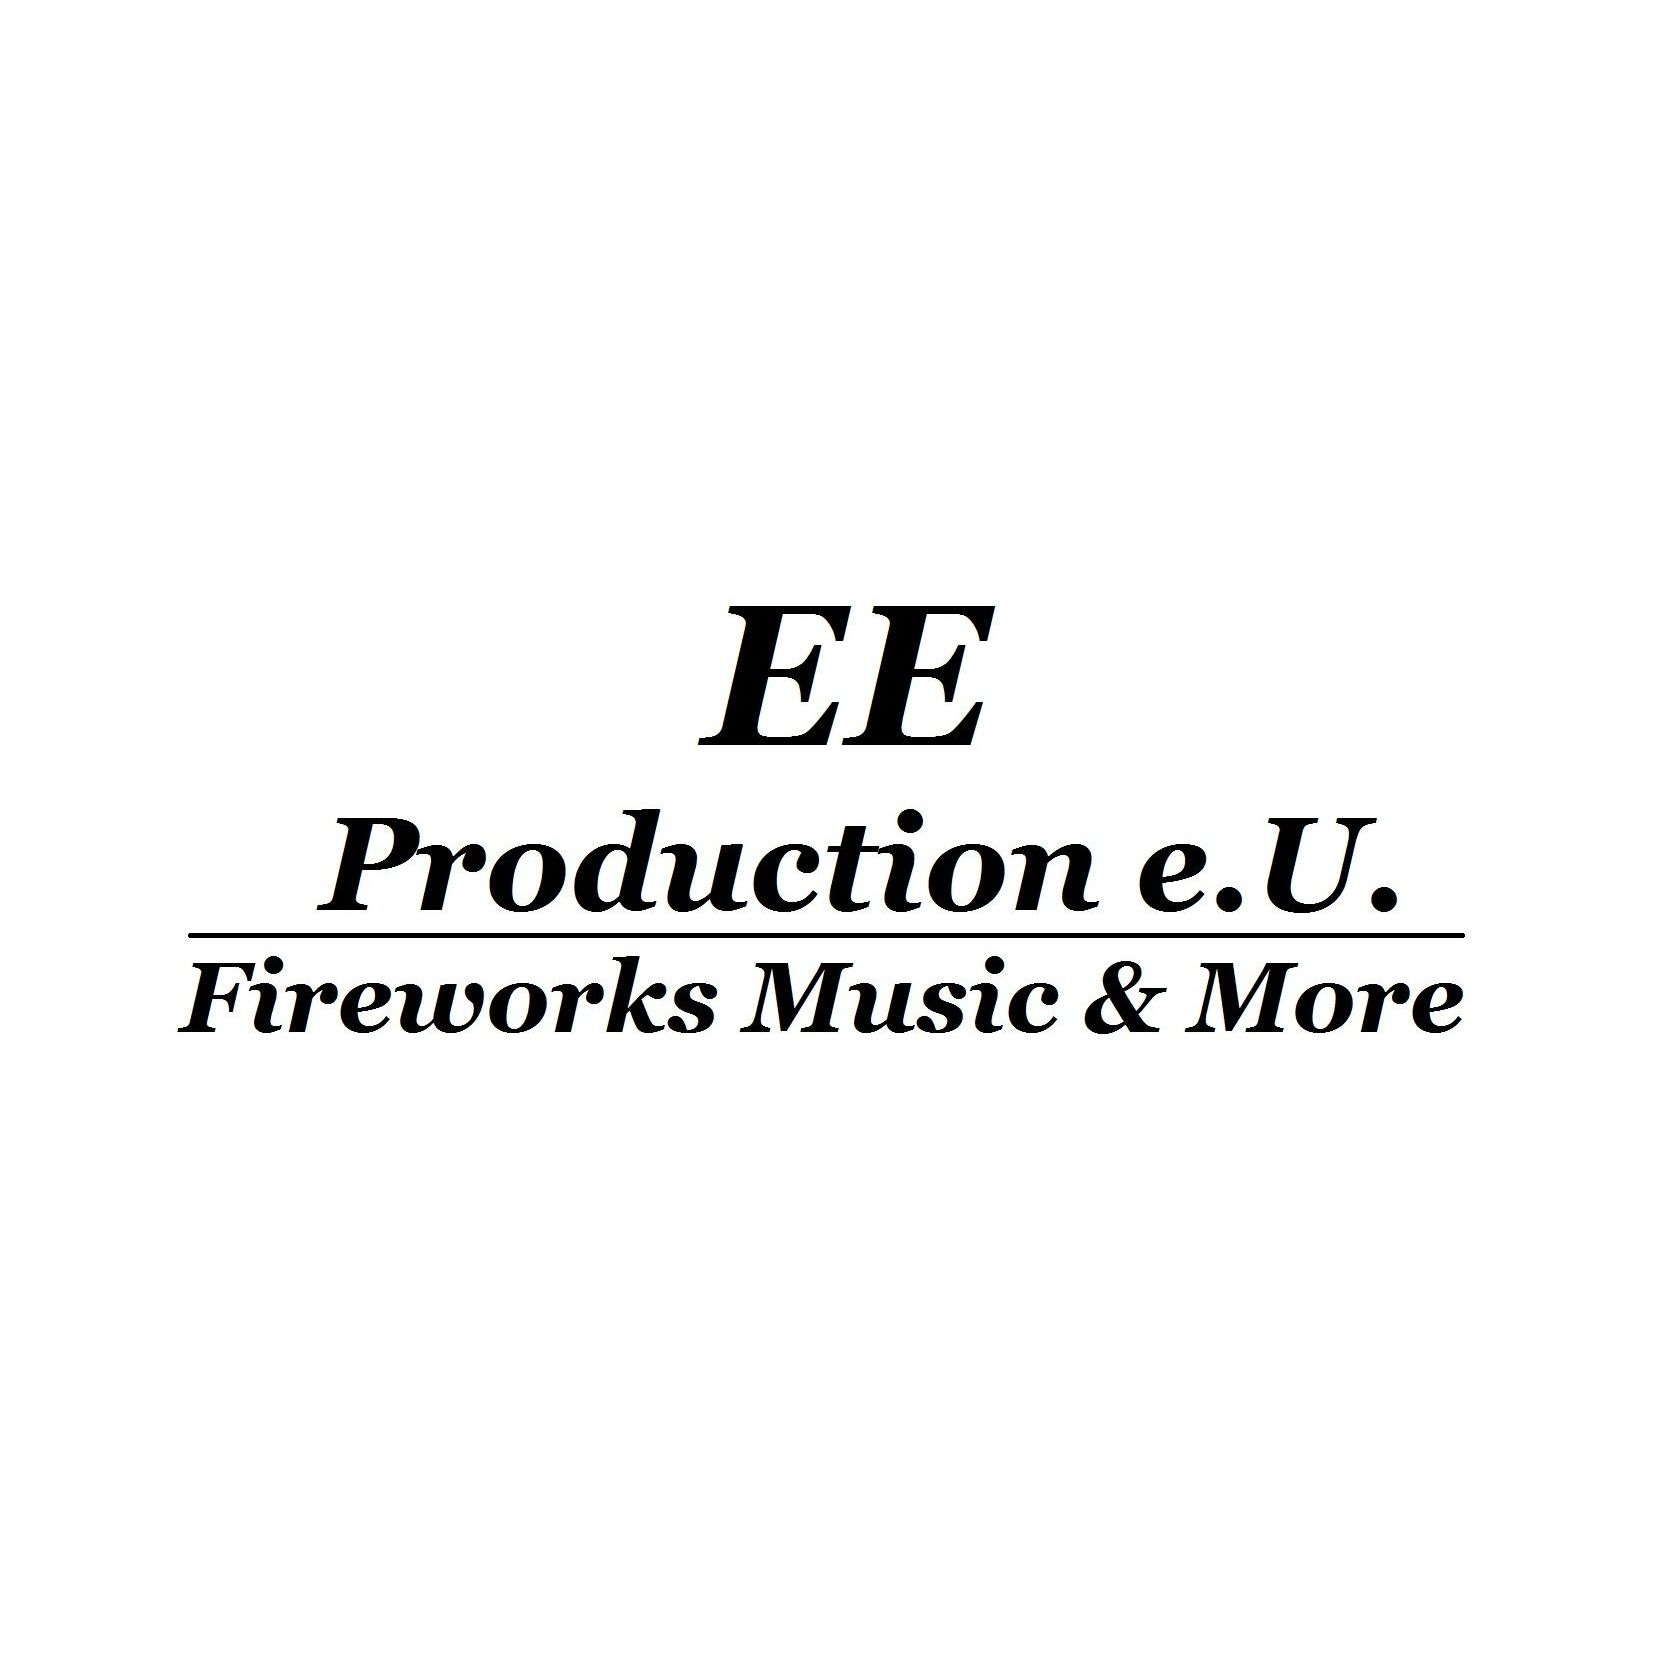 EE Production - Fireworks Music & More